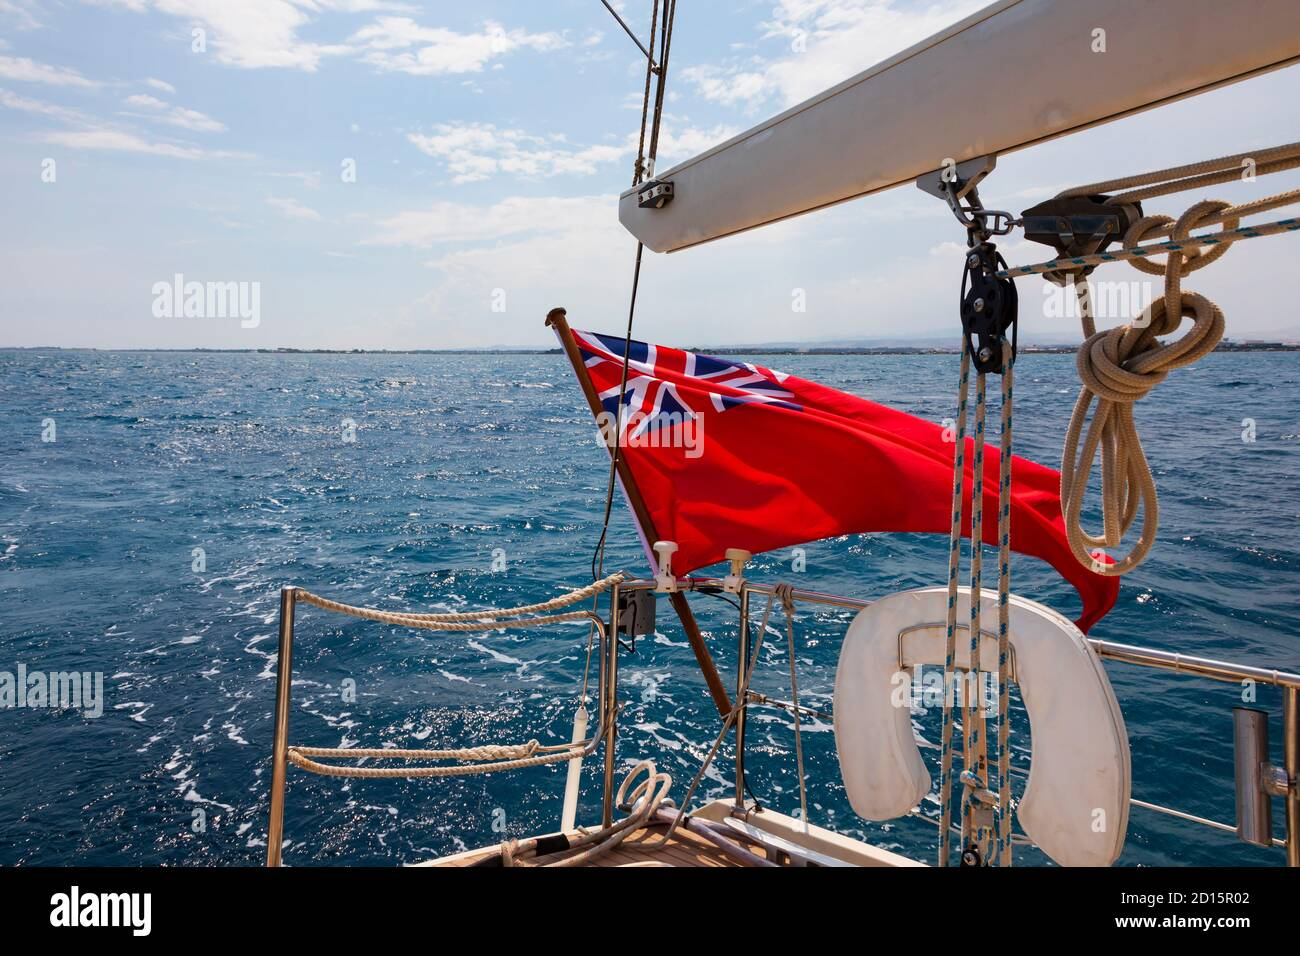 british-red-ensign-flag-flying-on-the-st